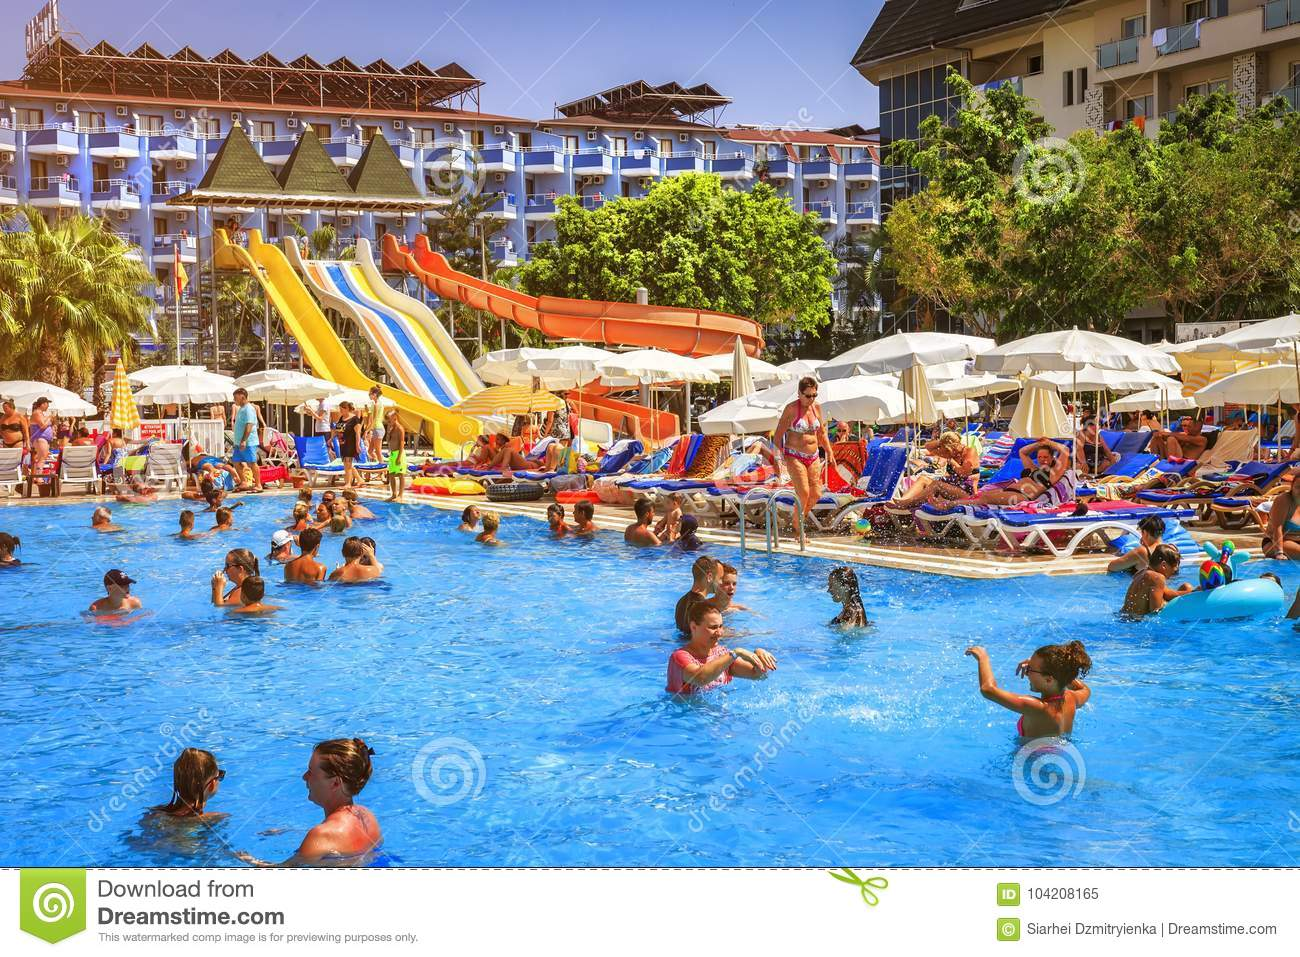 Konakli turkey august 18 2017 swimming pool with - Wetherby swimming pool swim times ...